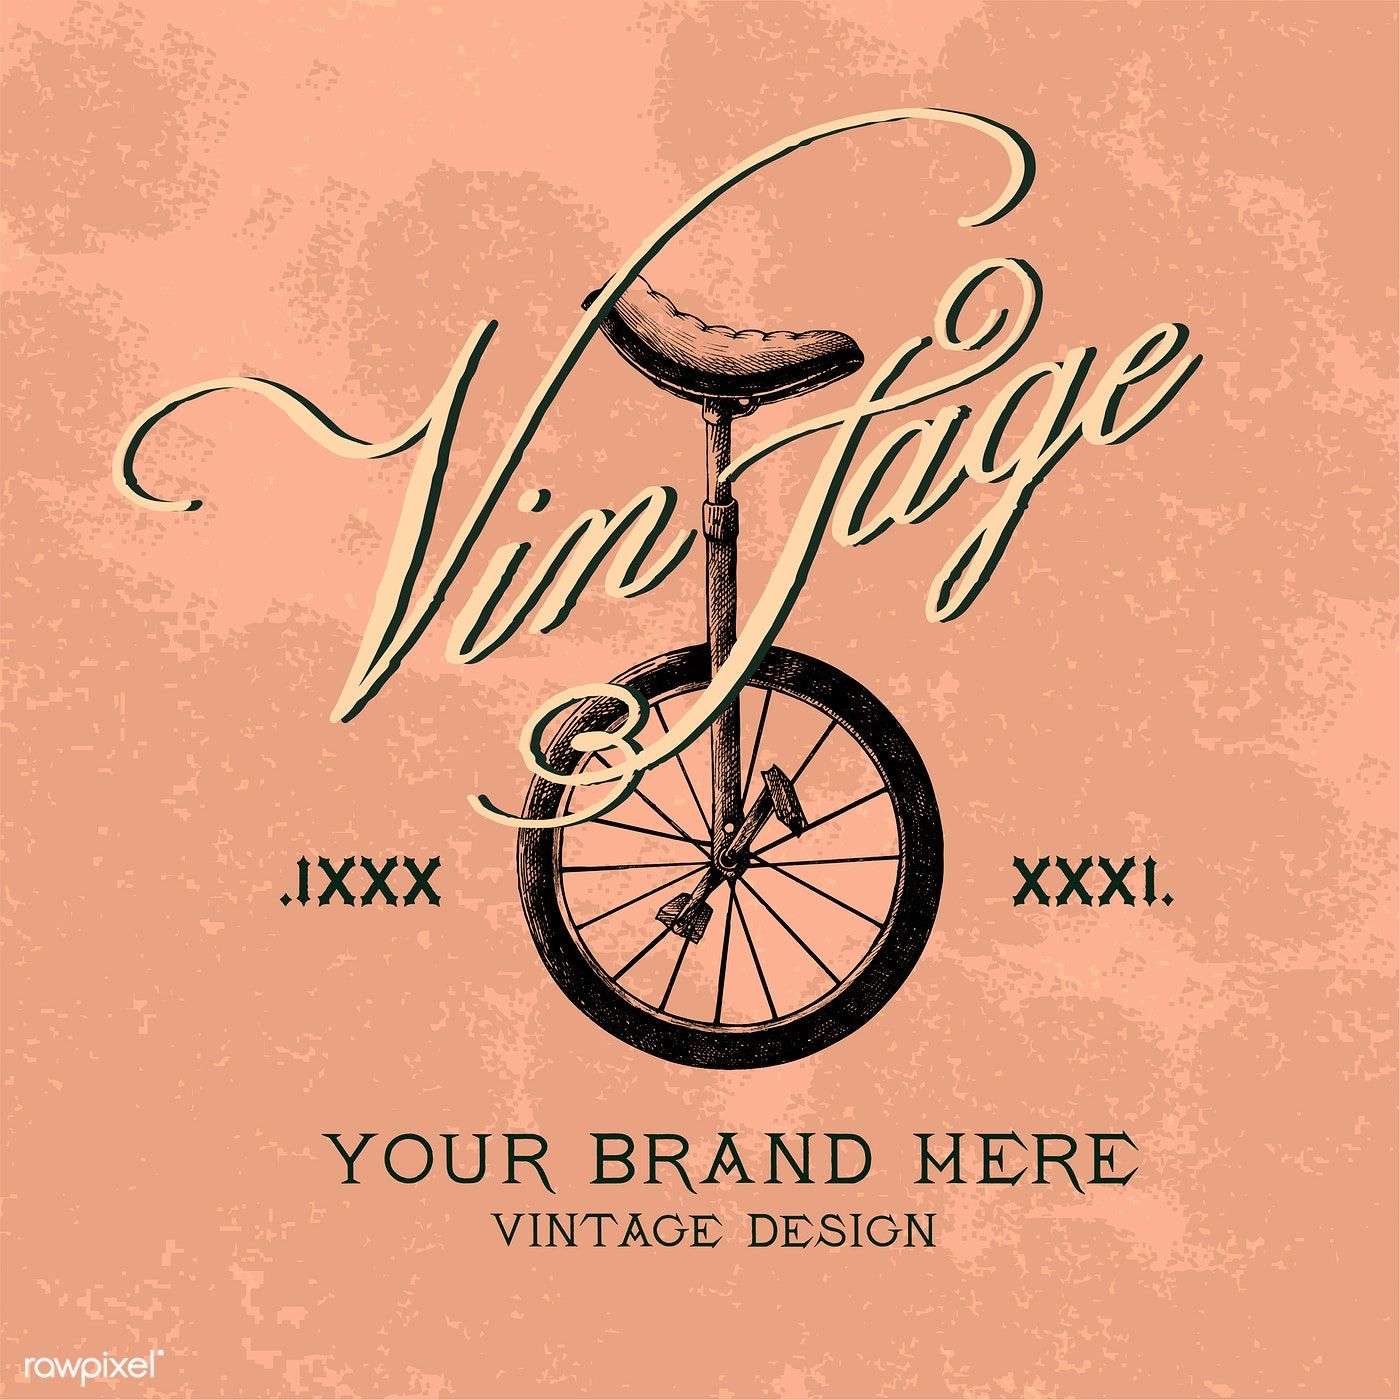 Vintage brand logo design vector free image by rawpixel